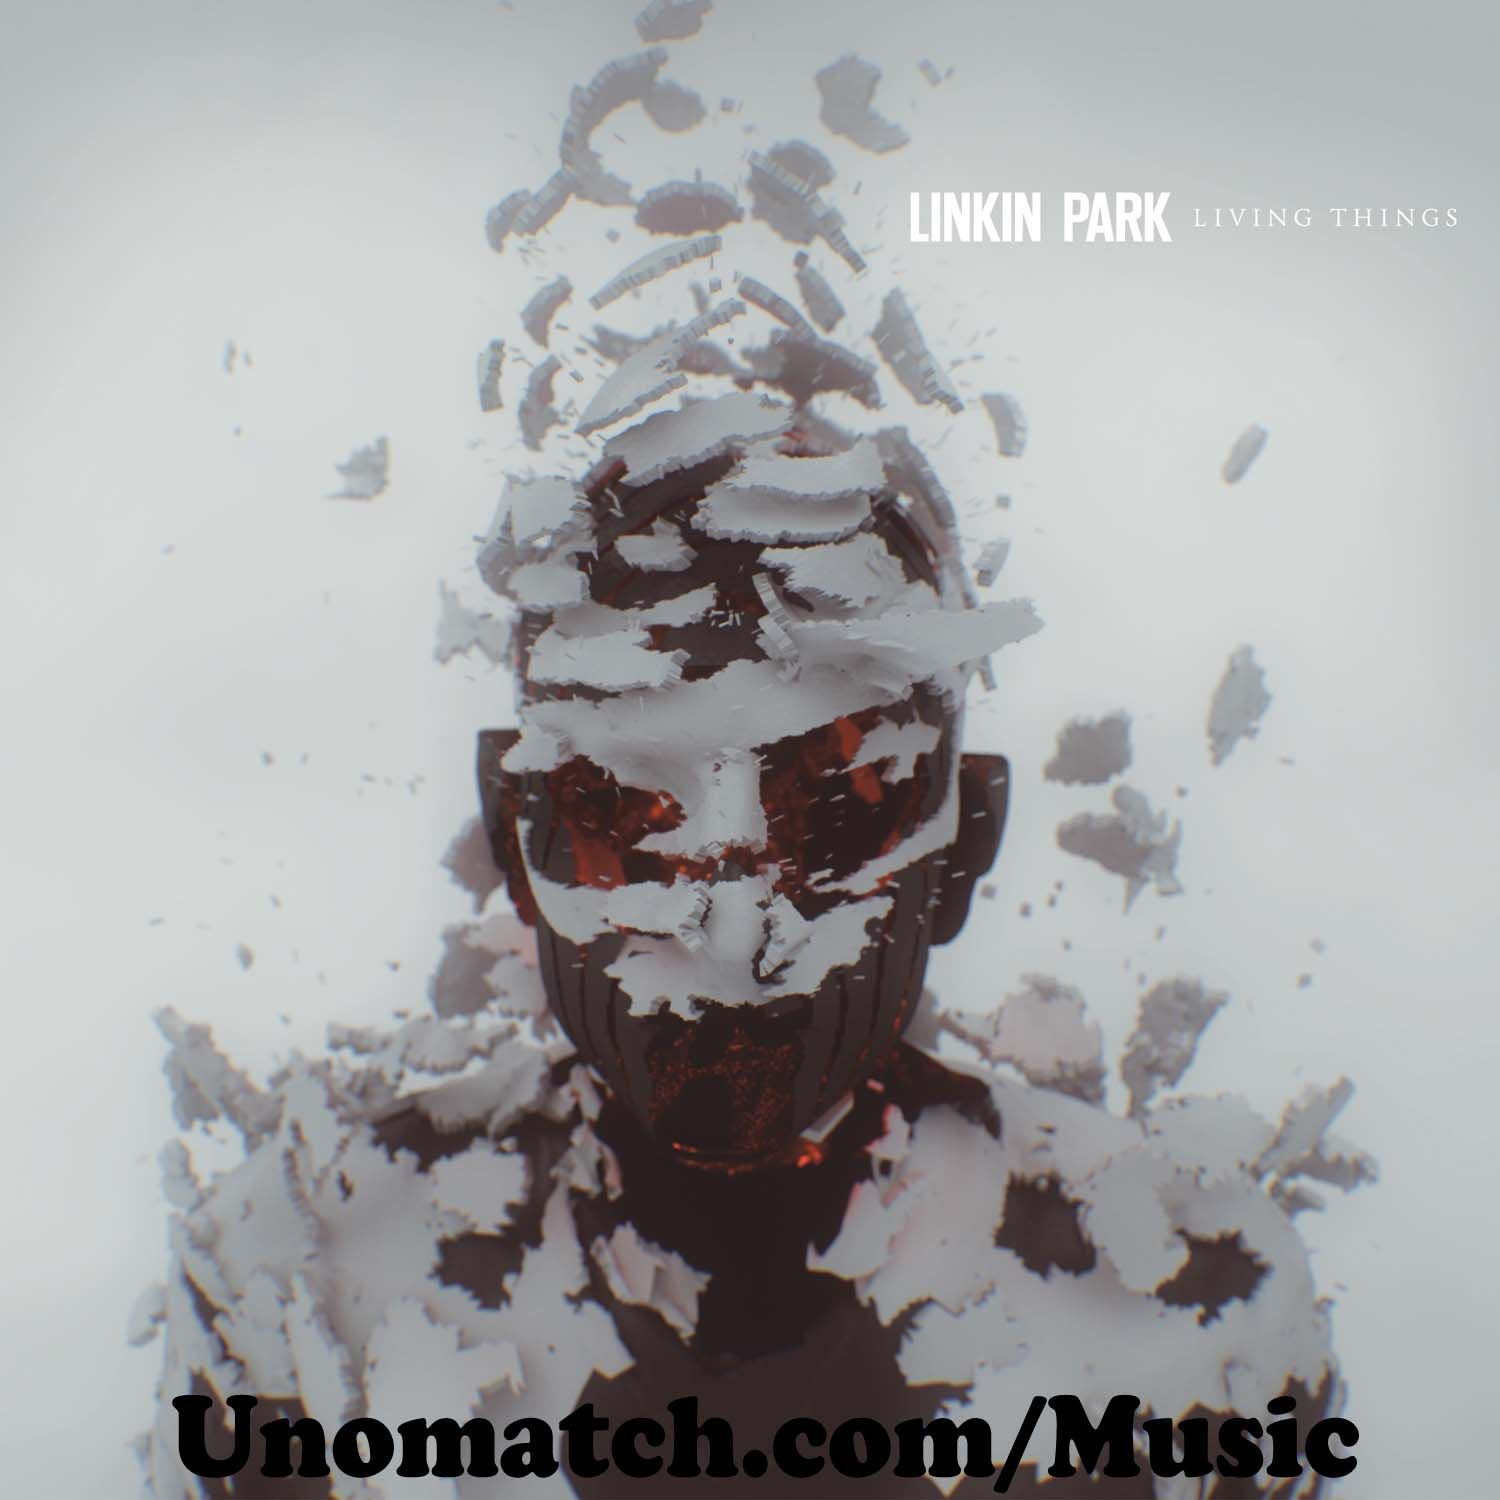 Songs Free Album Download  http://www.unomatch.com/music/living-things-linkin-park/albums/living-things-linkin-park/